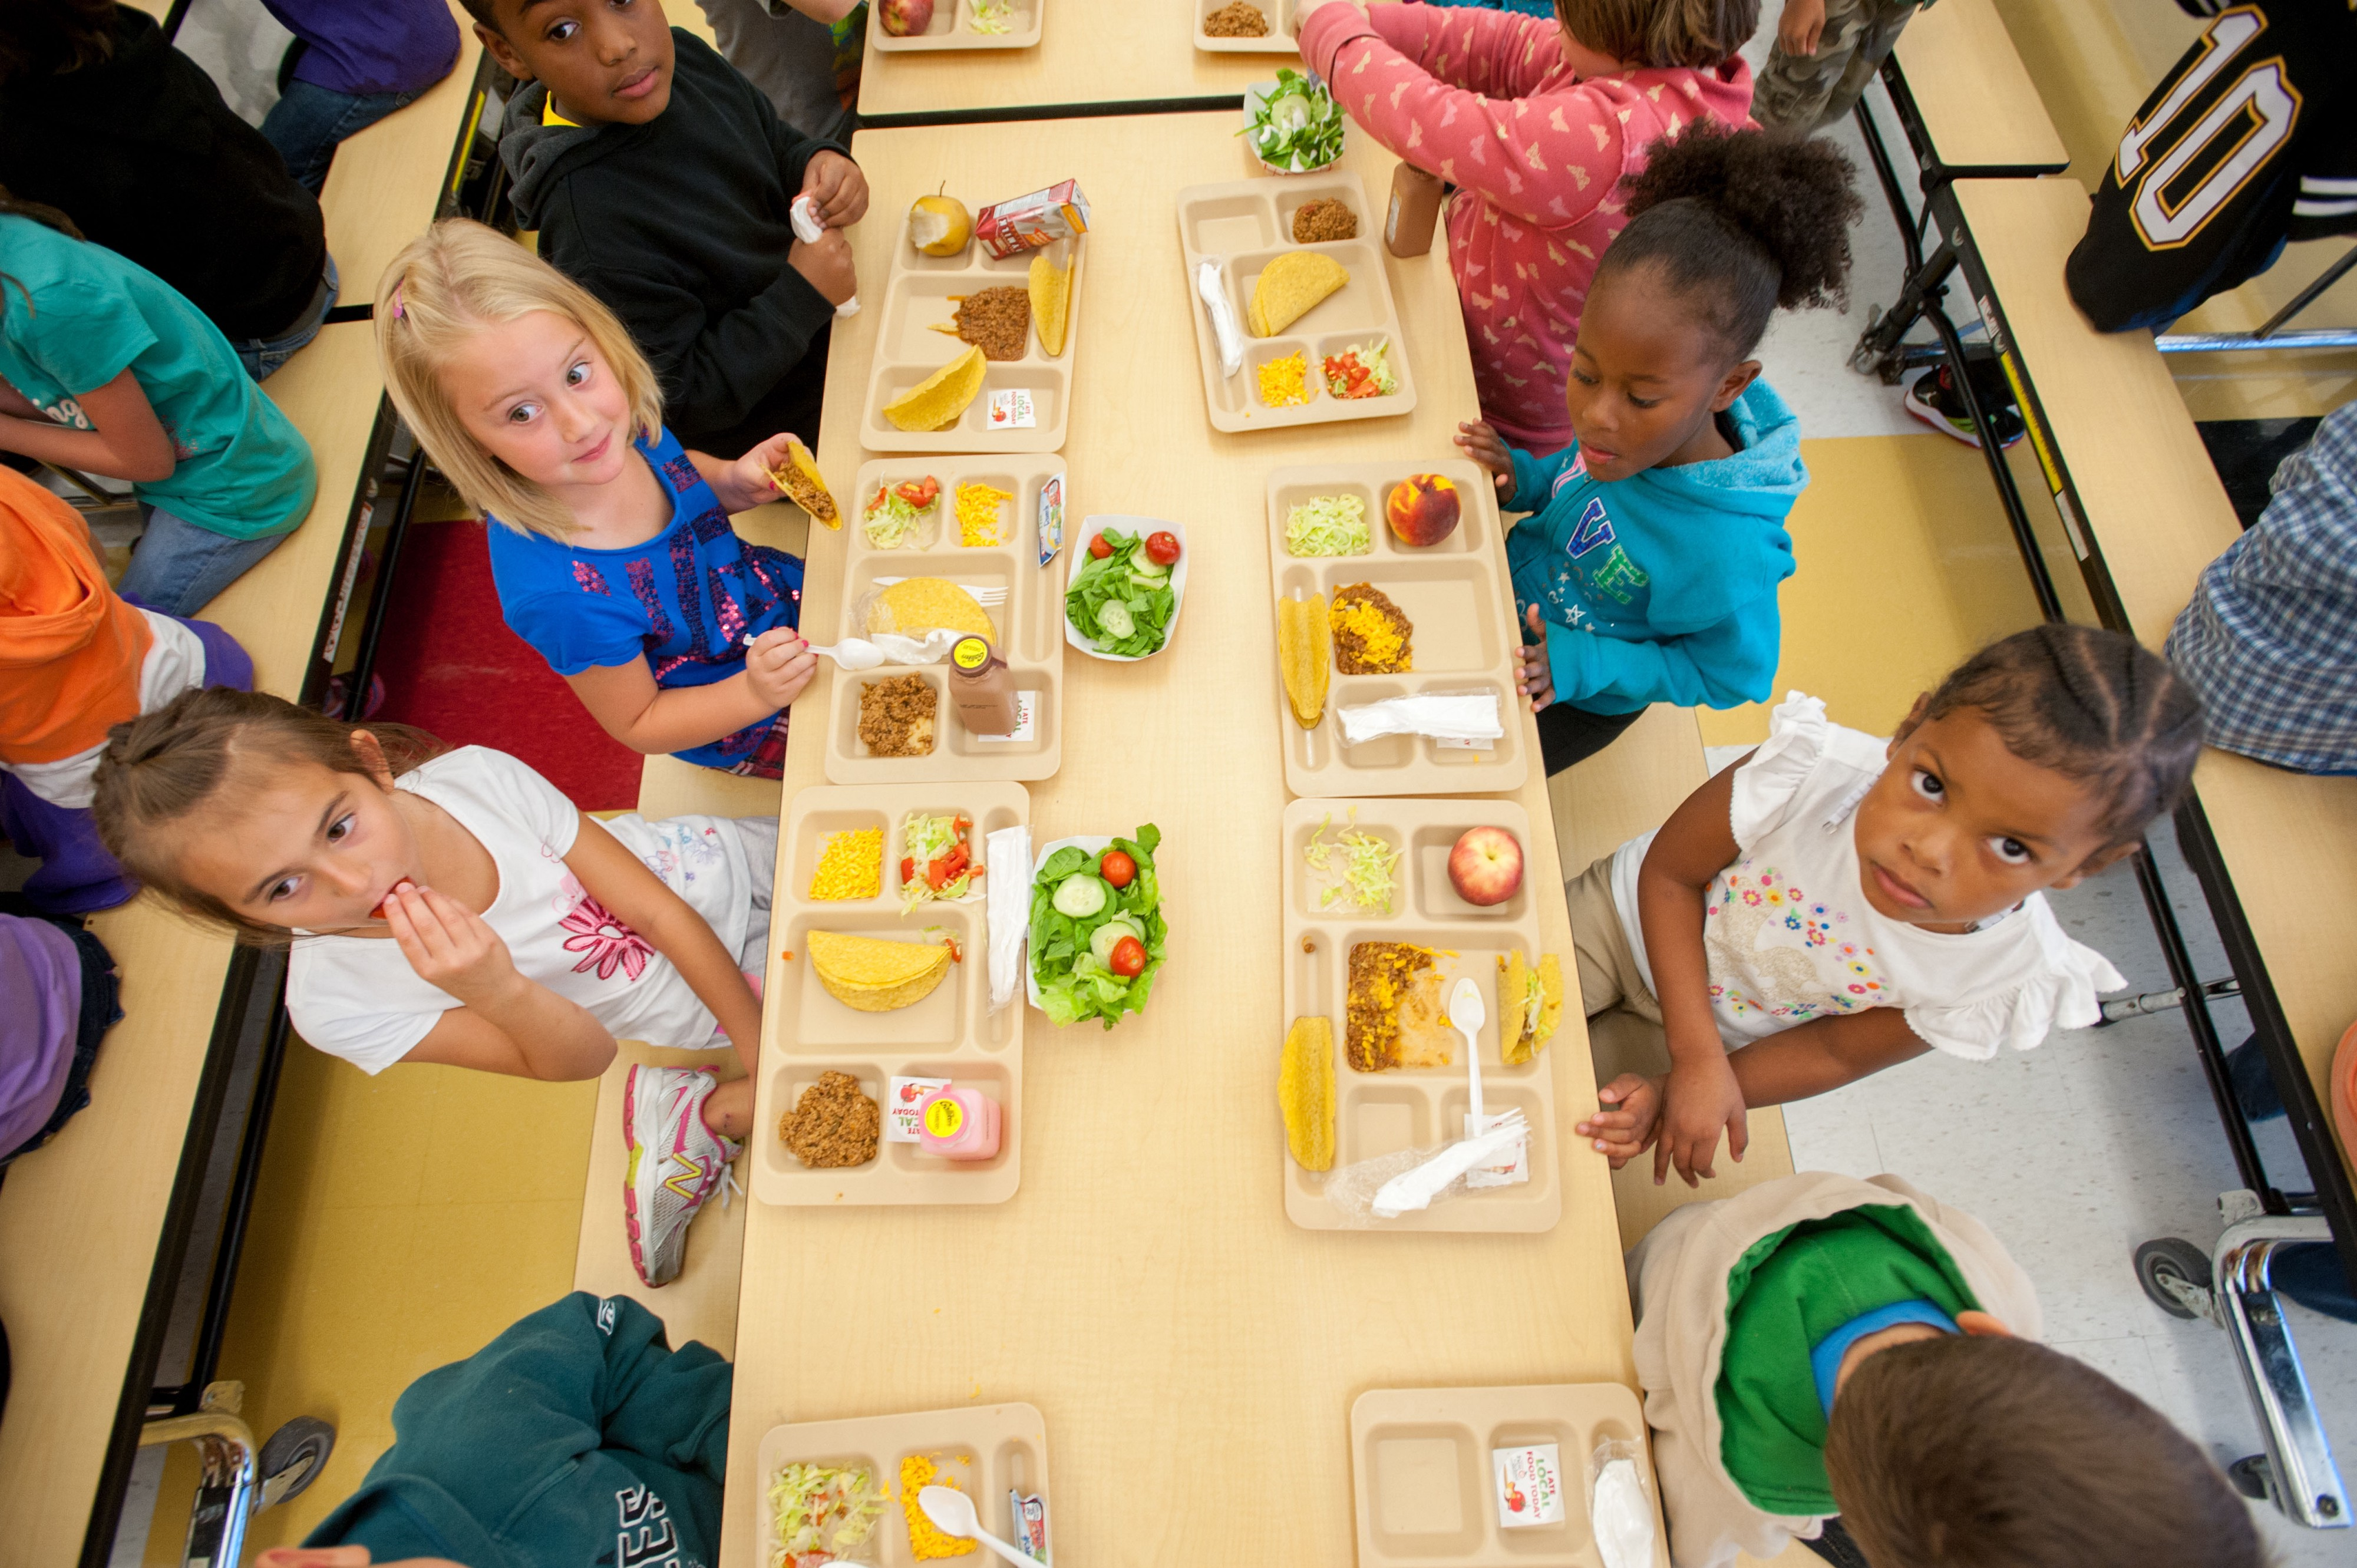 School Lunches Are Too Short  And That's A Problem - BRIGHT